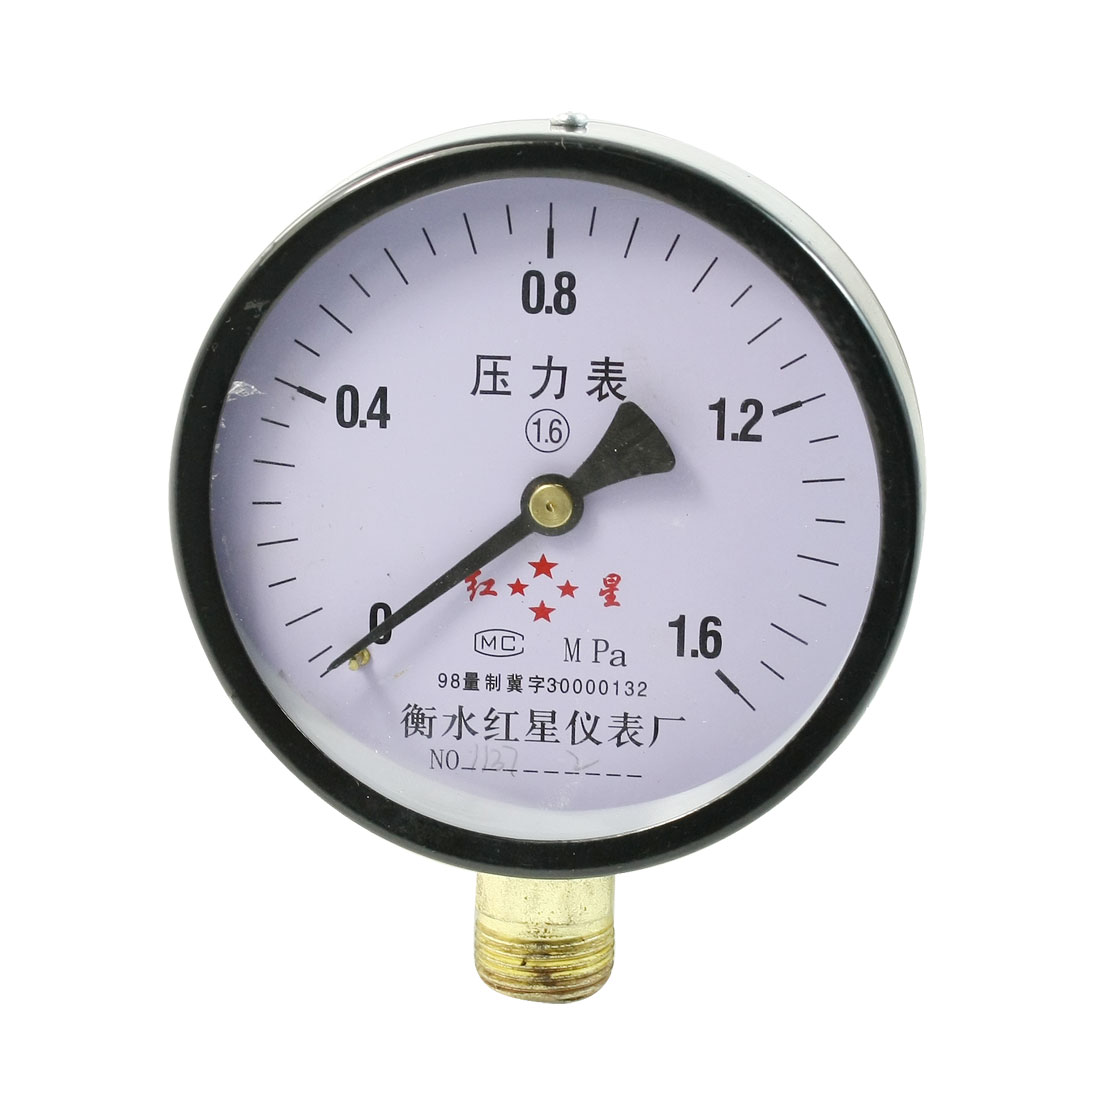 M20x1.5mm Thread Black Round Air Water Pressure Gauge 1.6 Mpa